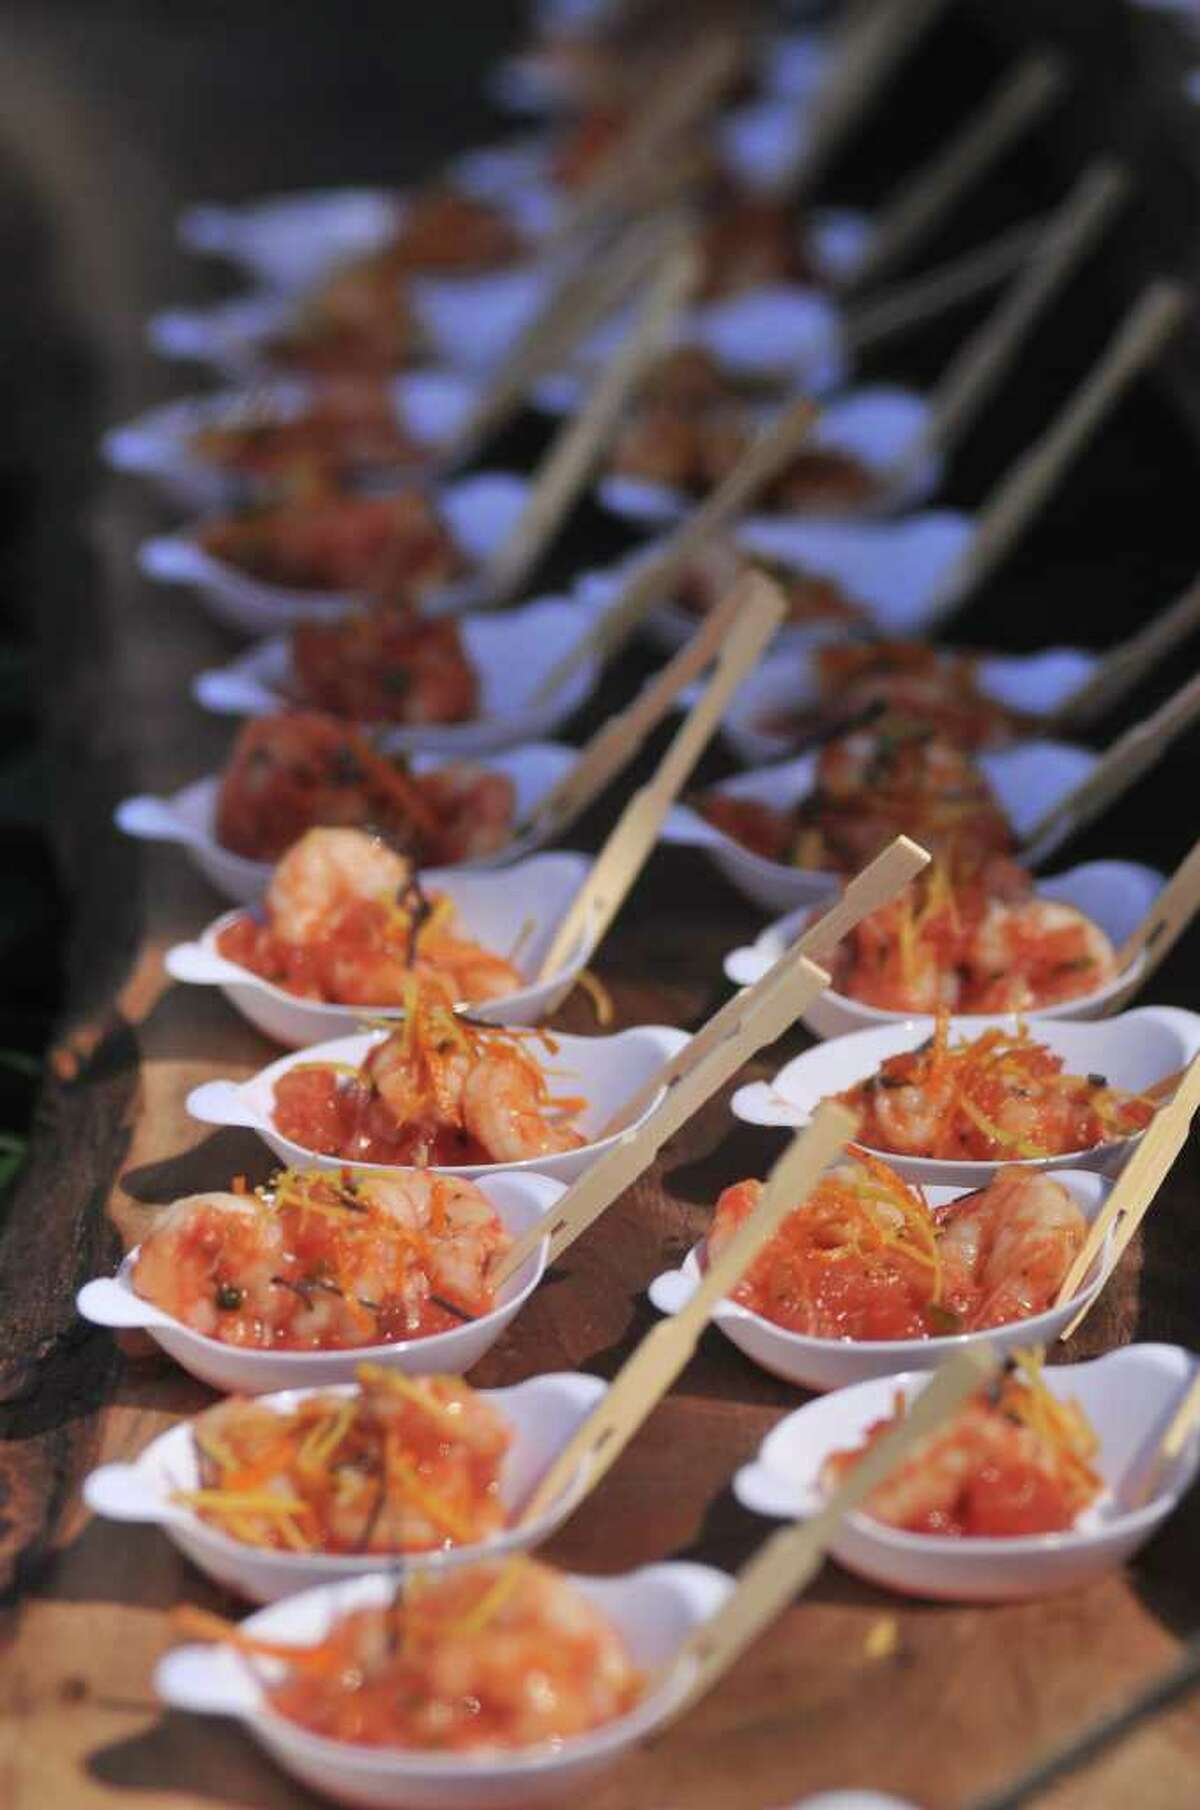 Shrimp Ceveche' was also served during the Corona Paella Challenge at the Pearl Brewery Sunday.